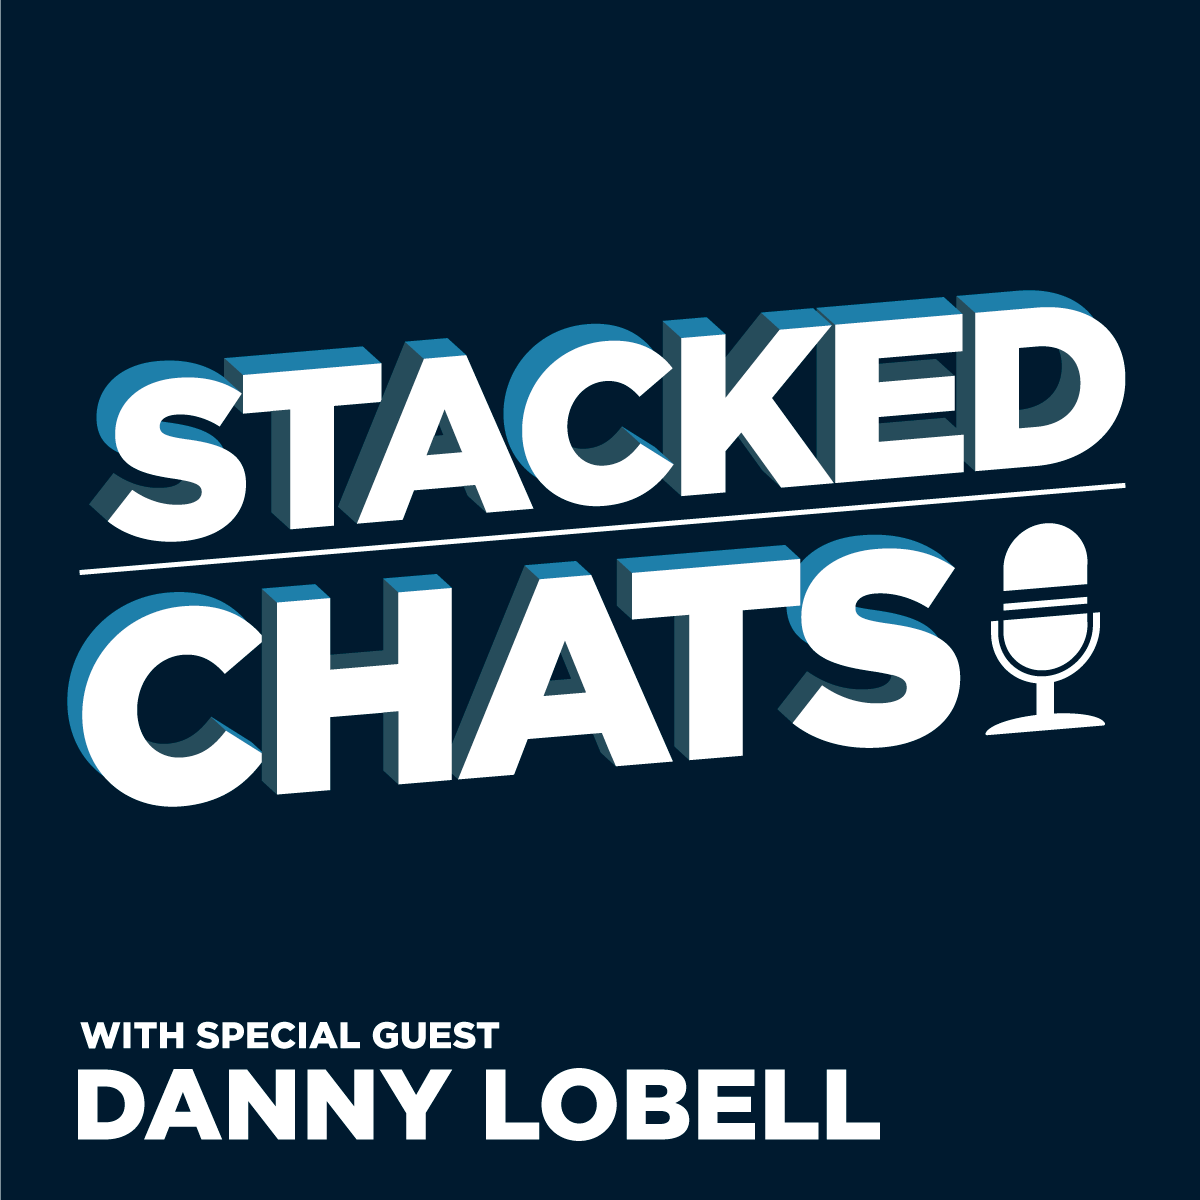 Stacked_Chats_DannyLobell.png